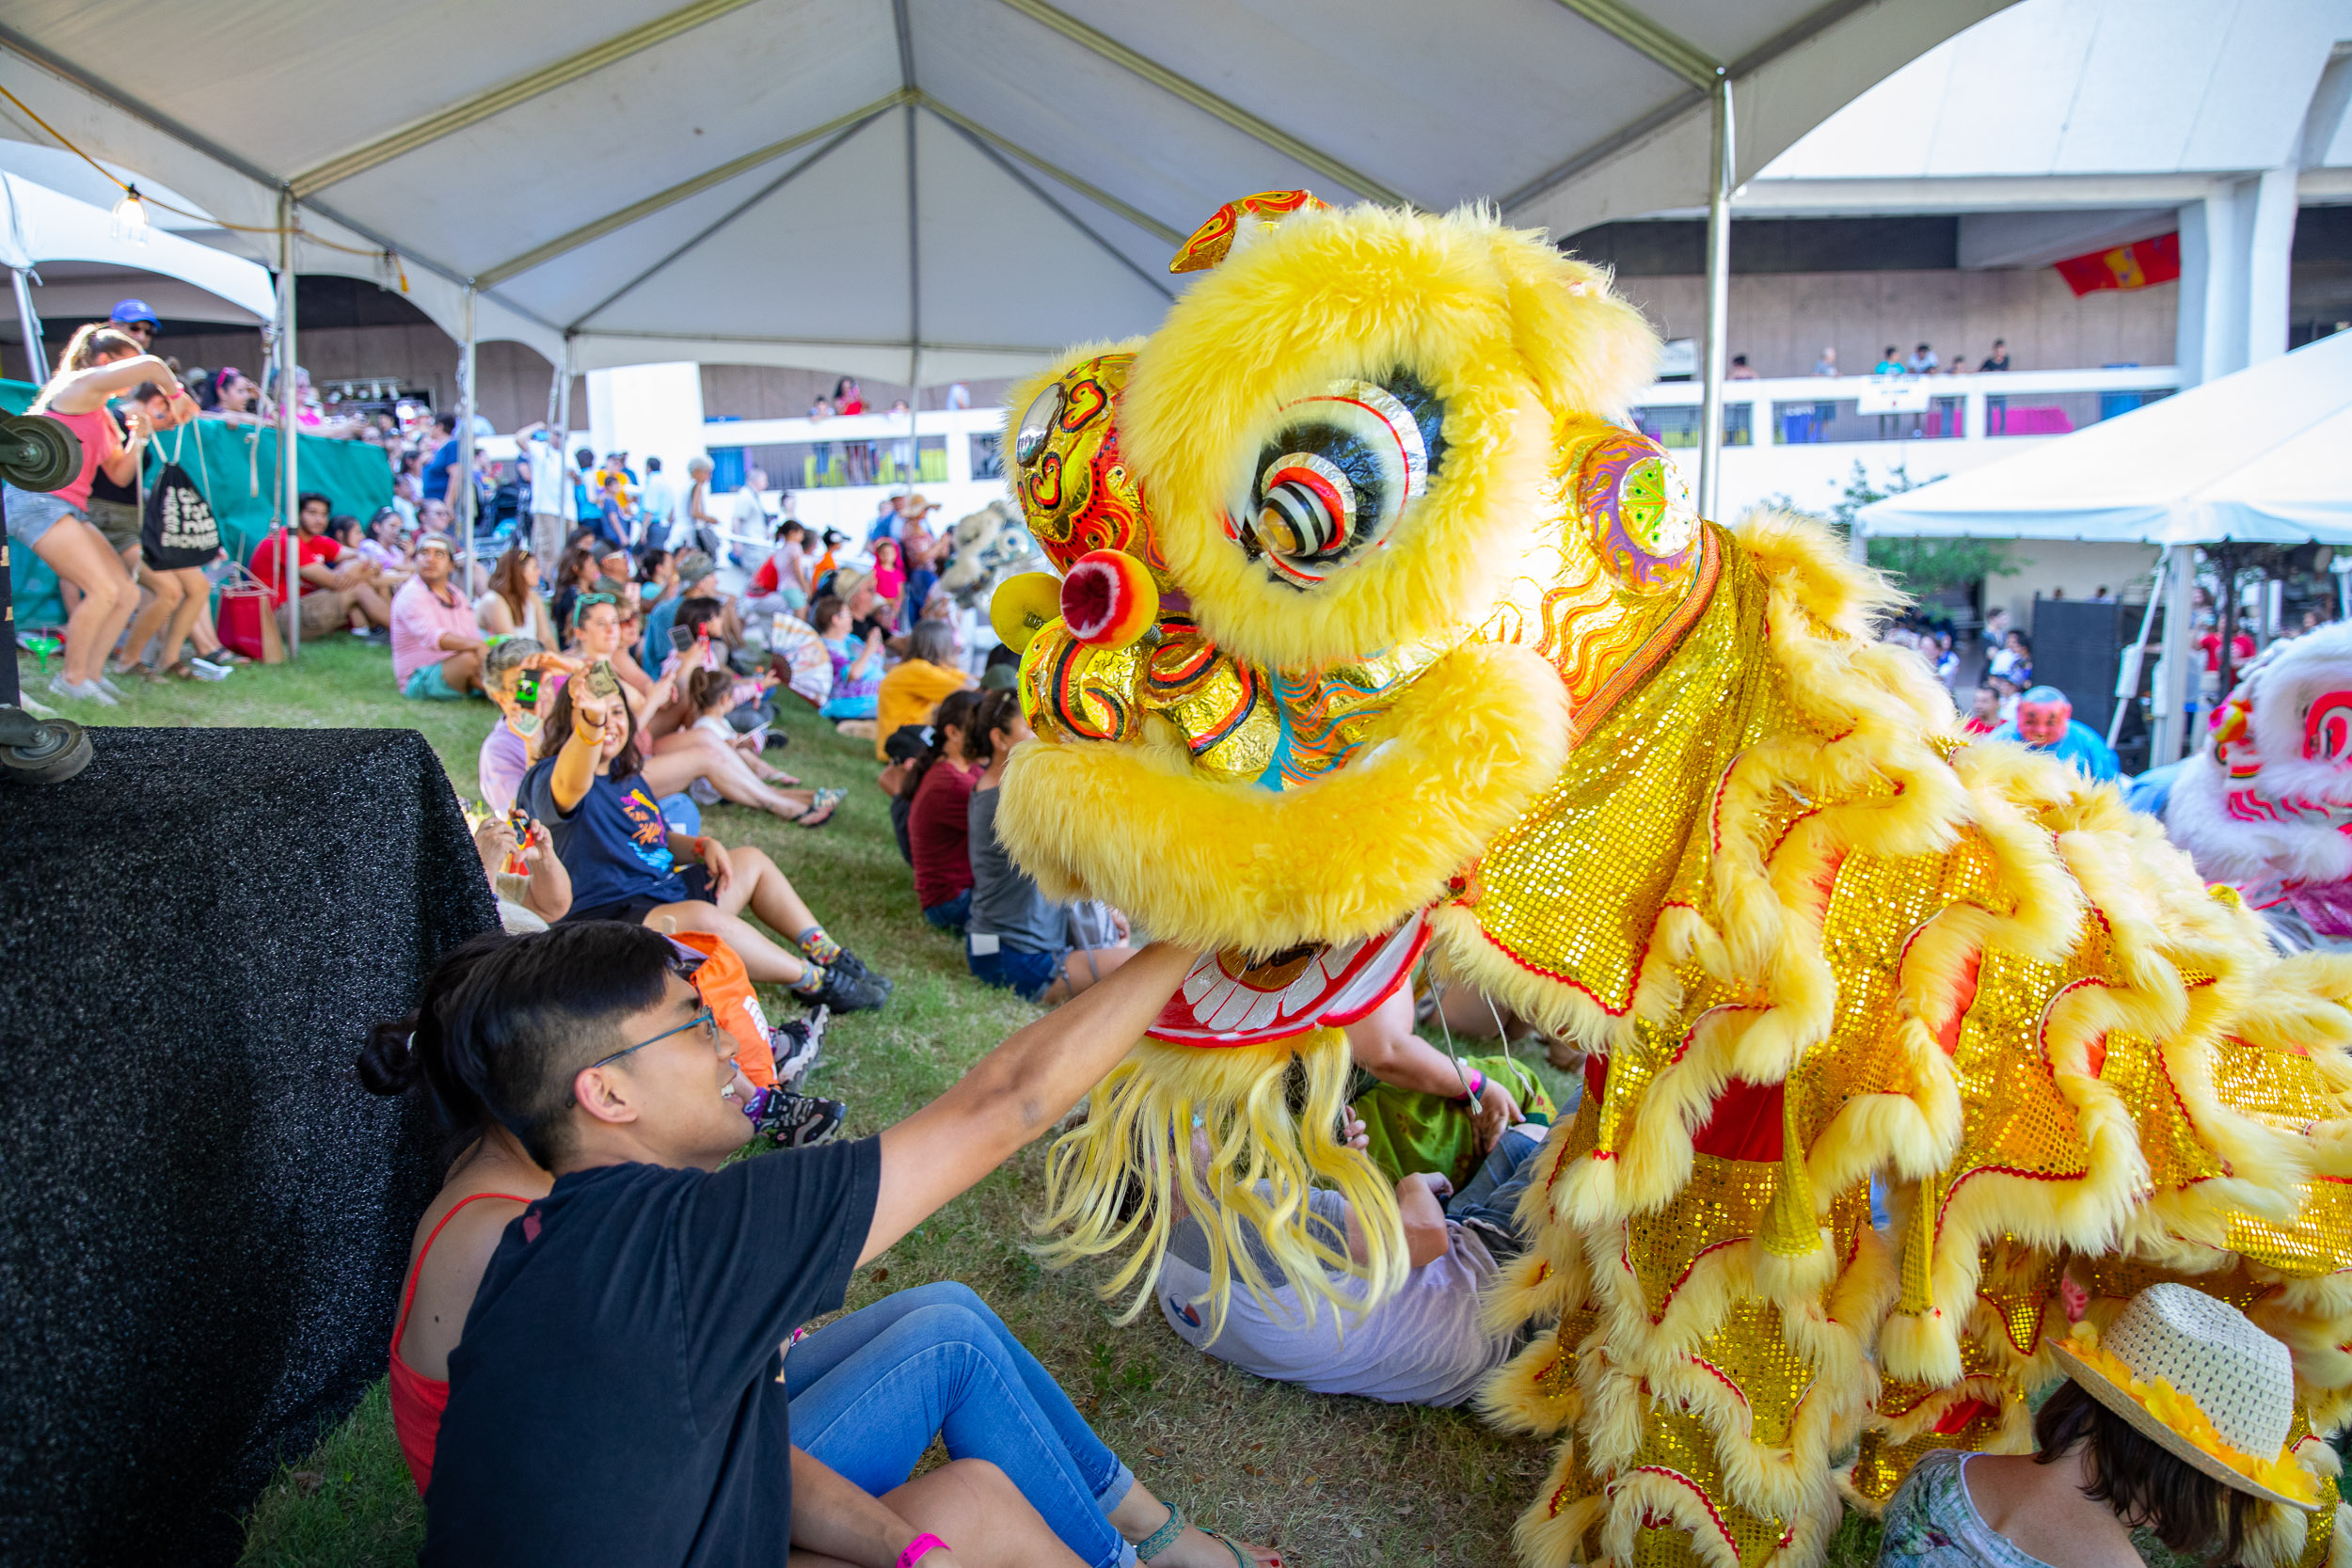 An attendee interacts with the traditional Lion Dance performers. (Photo by  Joel Pena  - Photographer, SA Sentinel)